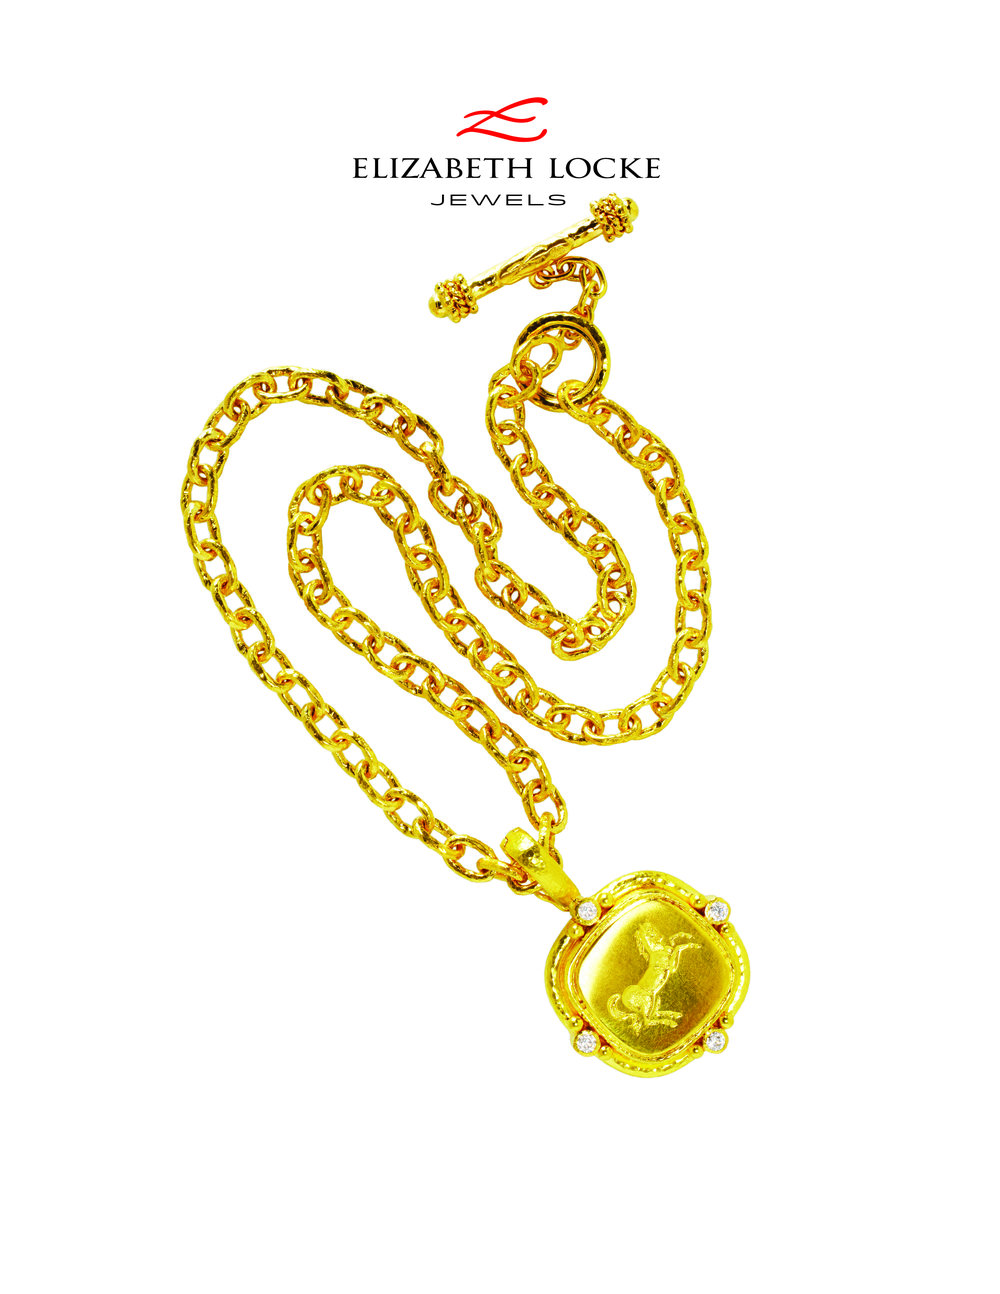 ELJ-Stores-Necklace-CMYK.jpg